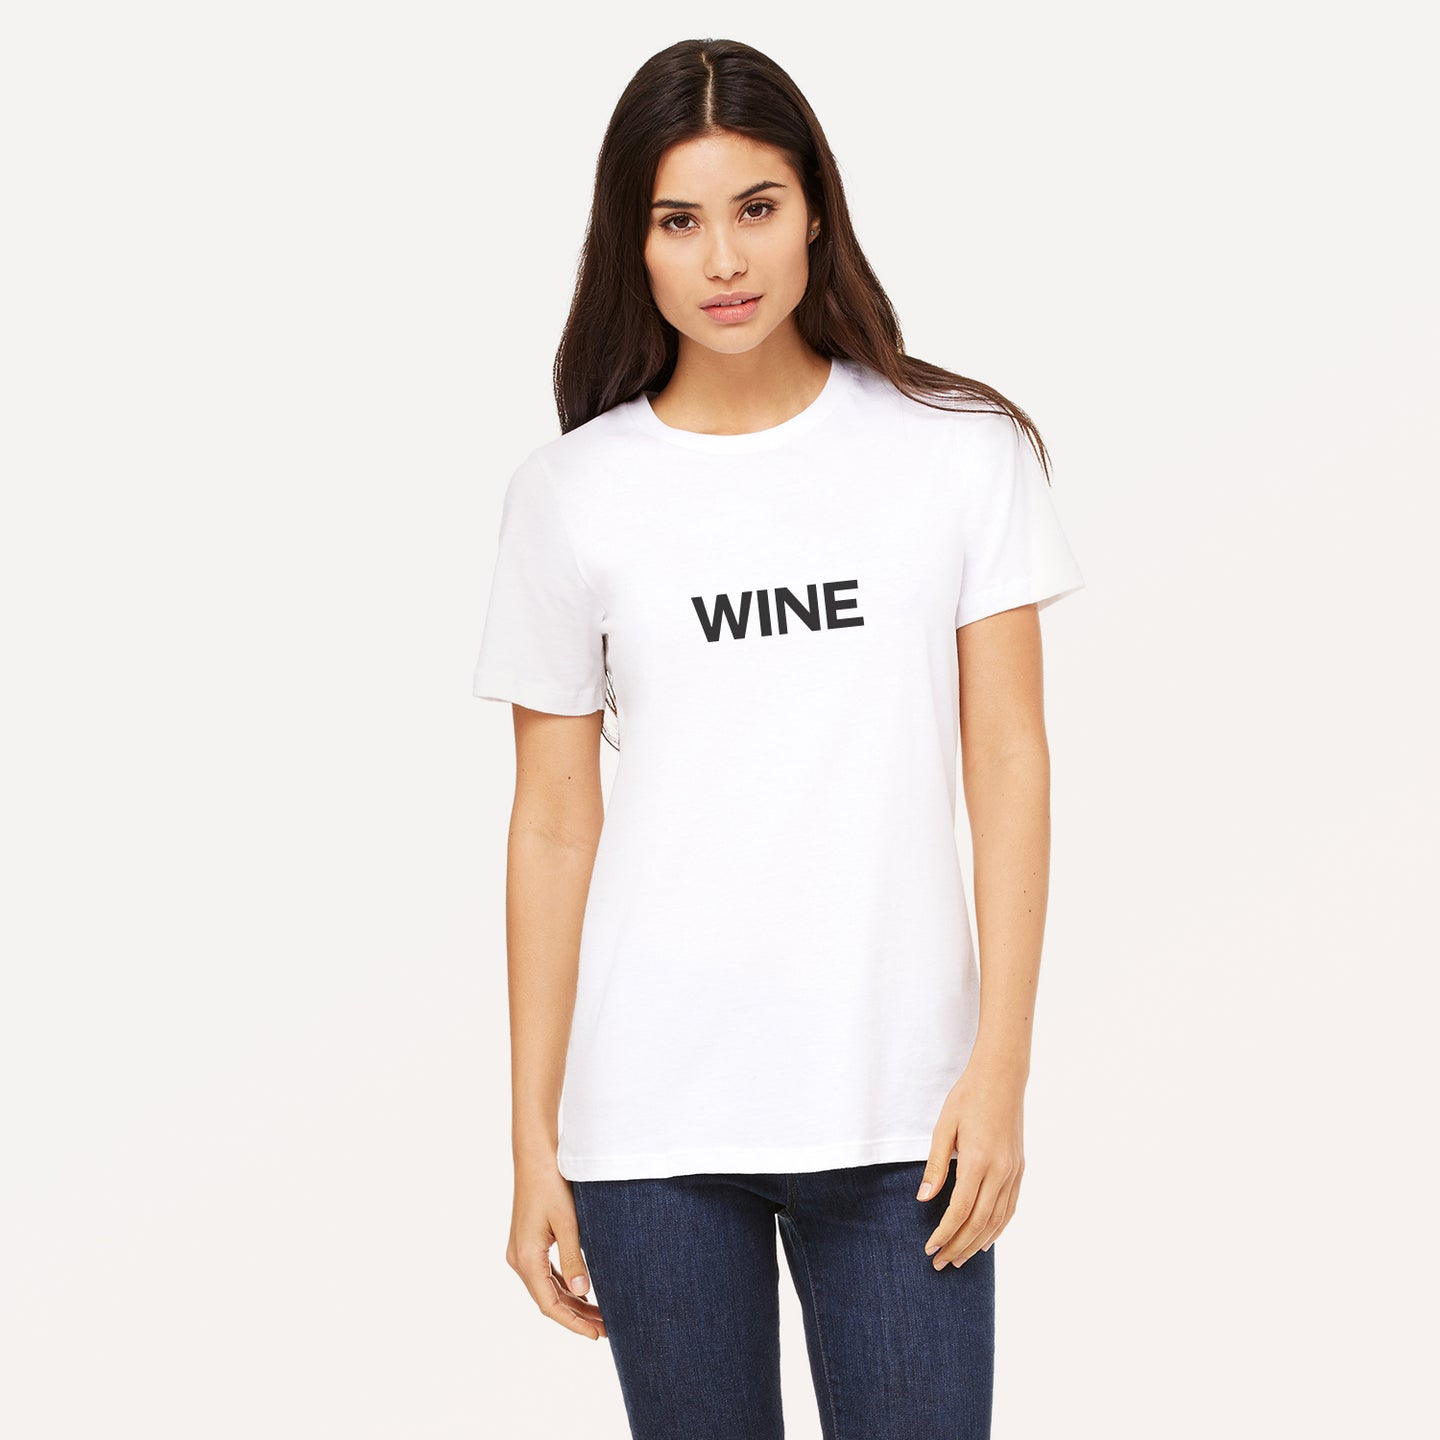 Wine graphic screenprinted in black on a white unisex relaxed cotton jersey t-shirt.